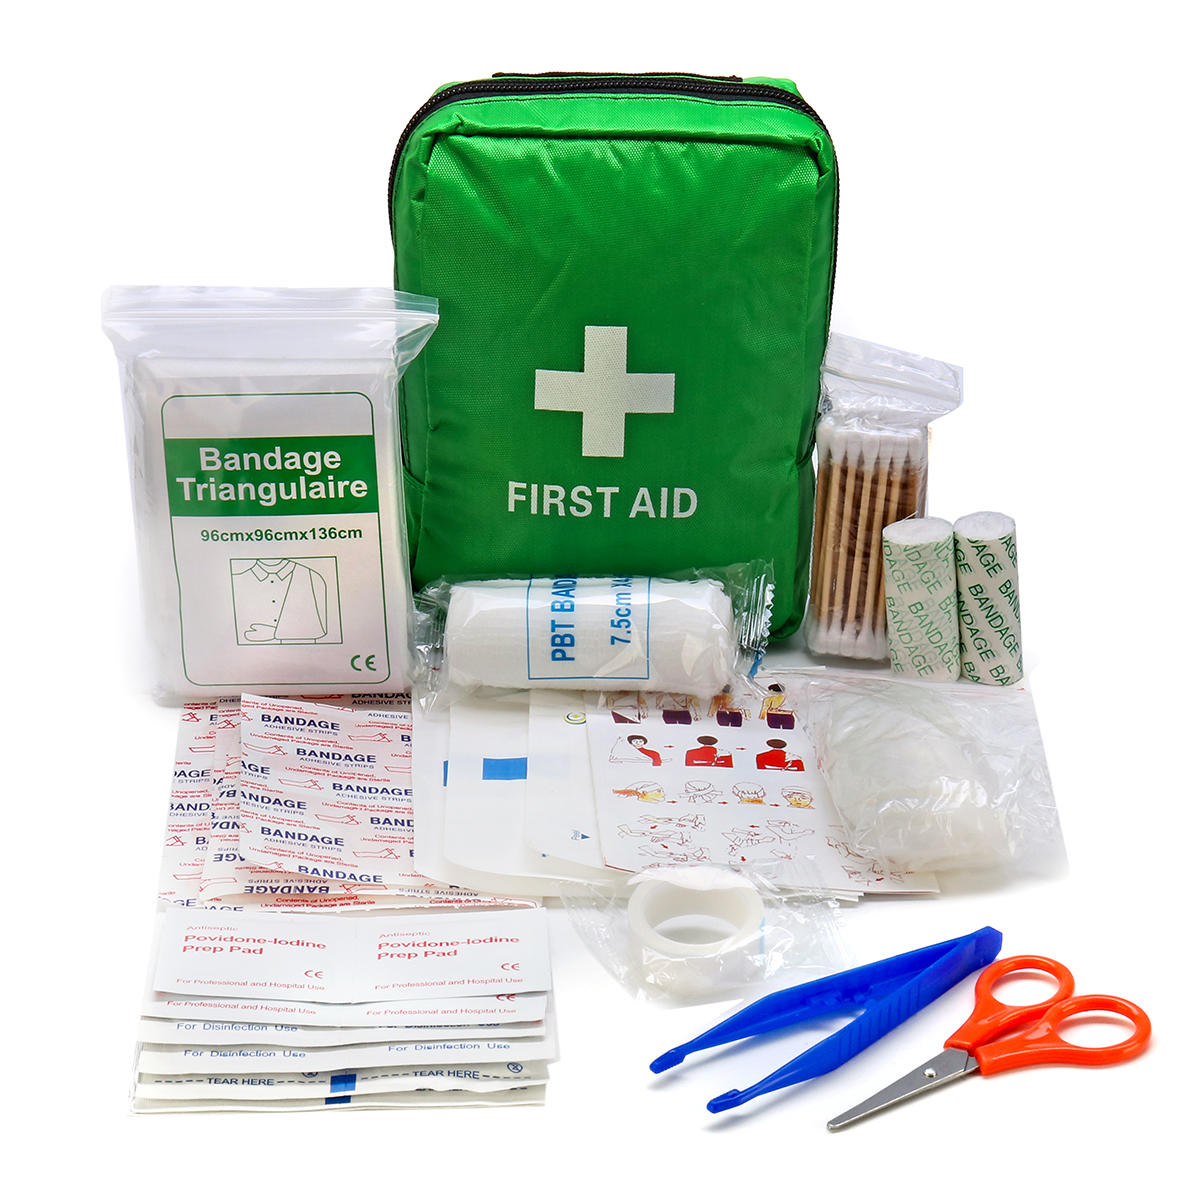 121Pcs Green First Aid Kit Medical Emergency Bag SOS For Outdoor Camping Travelling Scissors Bandage Disposable Gloves